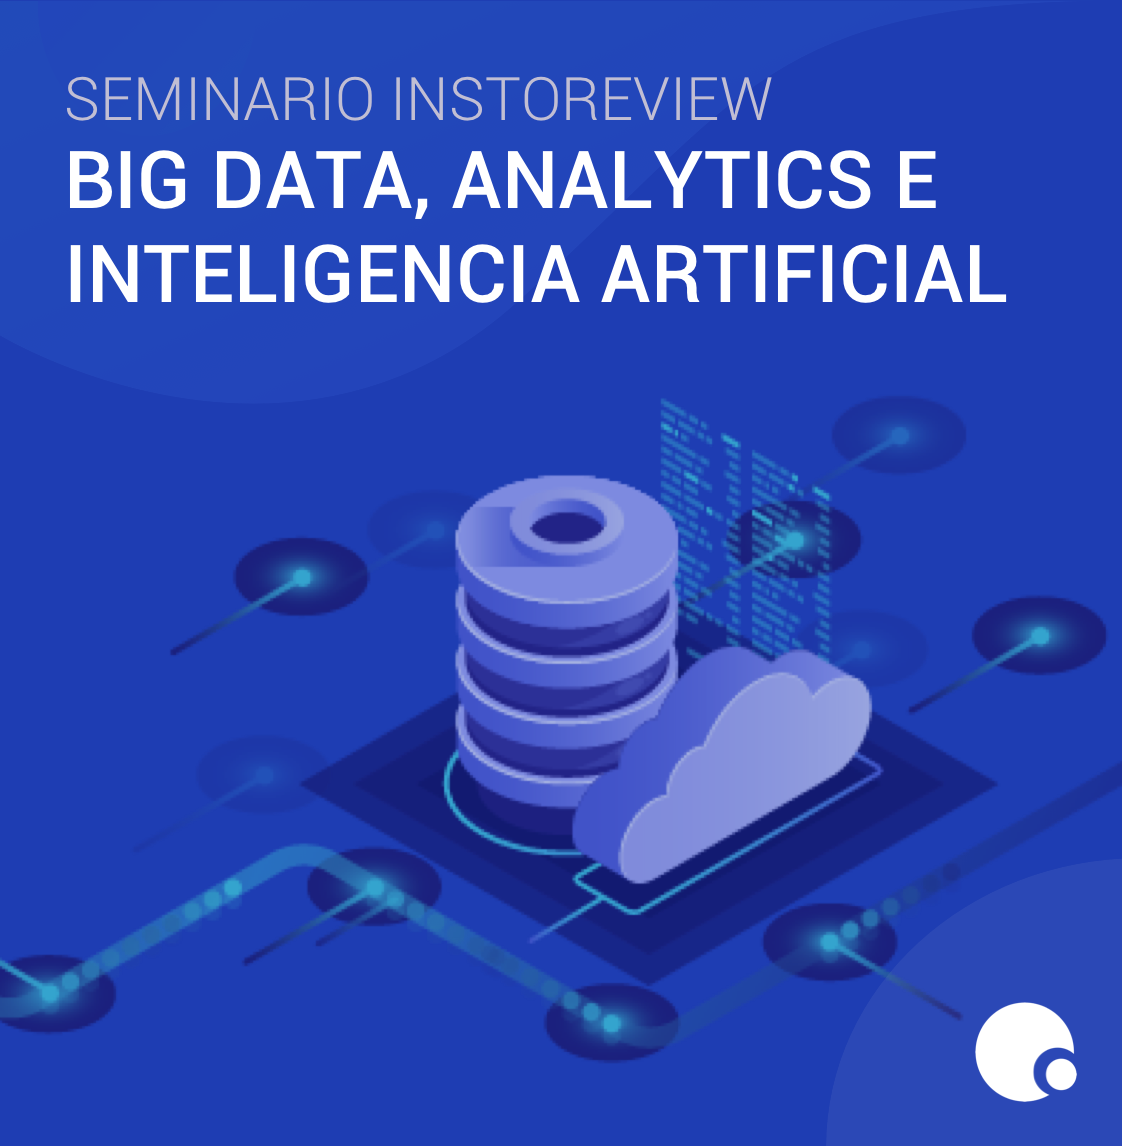 Big Data, Analytics e Inteligencia Artificial: cambiando la industria del Retail